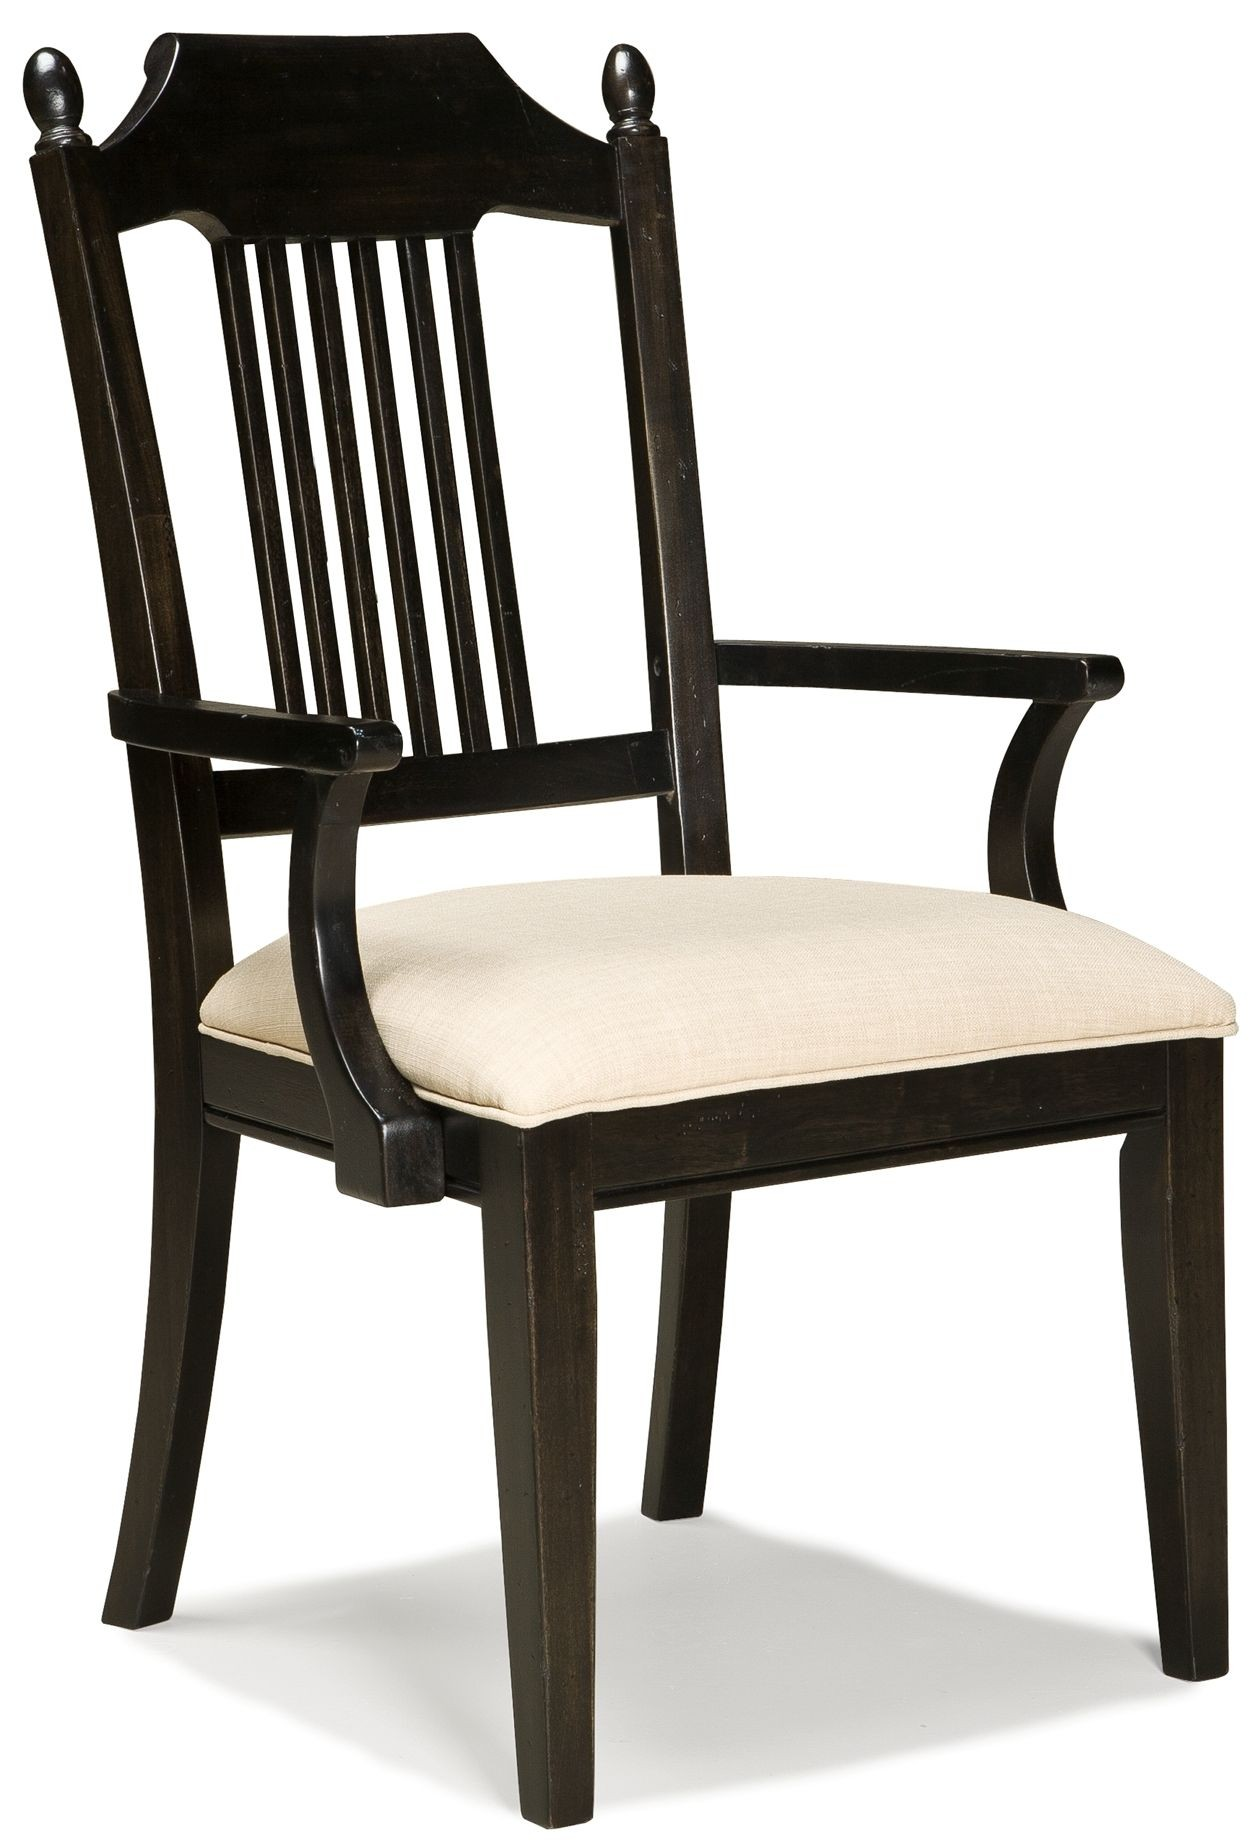 Spindle Arm Chair Pleasant Grove Java Spindle Back Arm Chair 2301 241 Kd